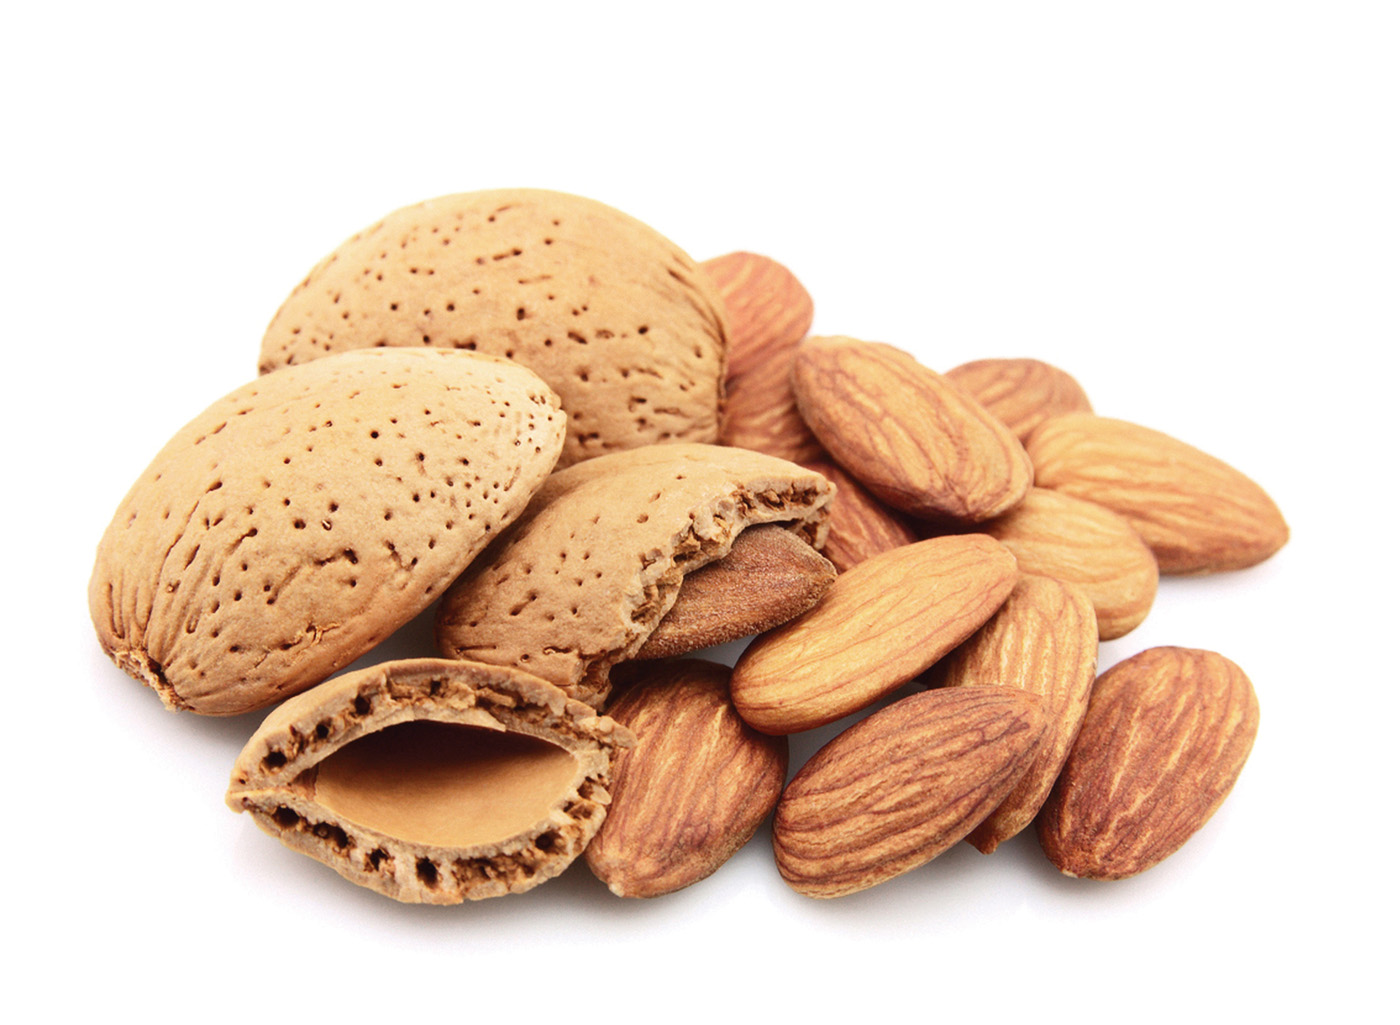 Entirely from heart: Almonds: A Wonderful nut to get ... Almond